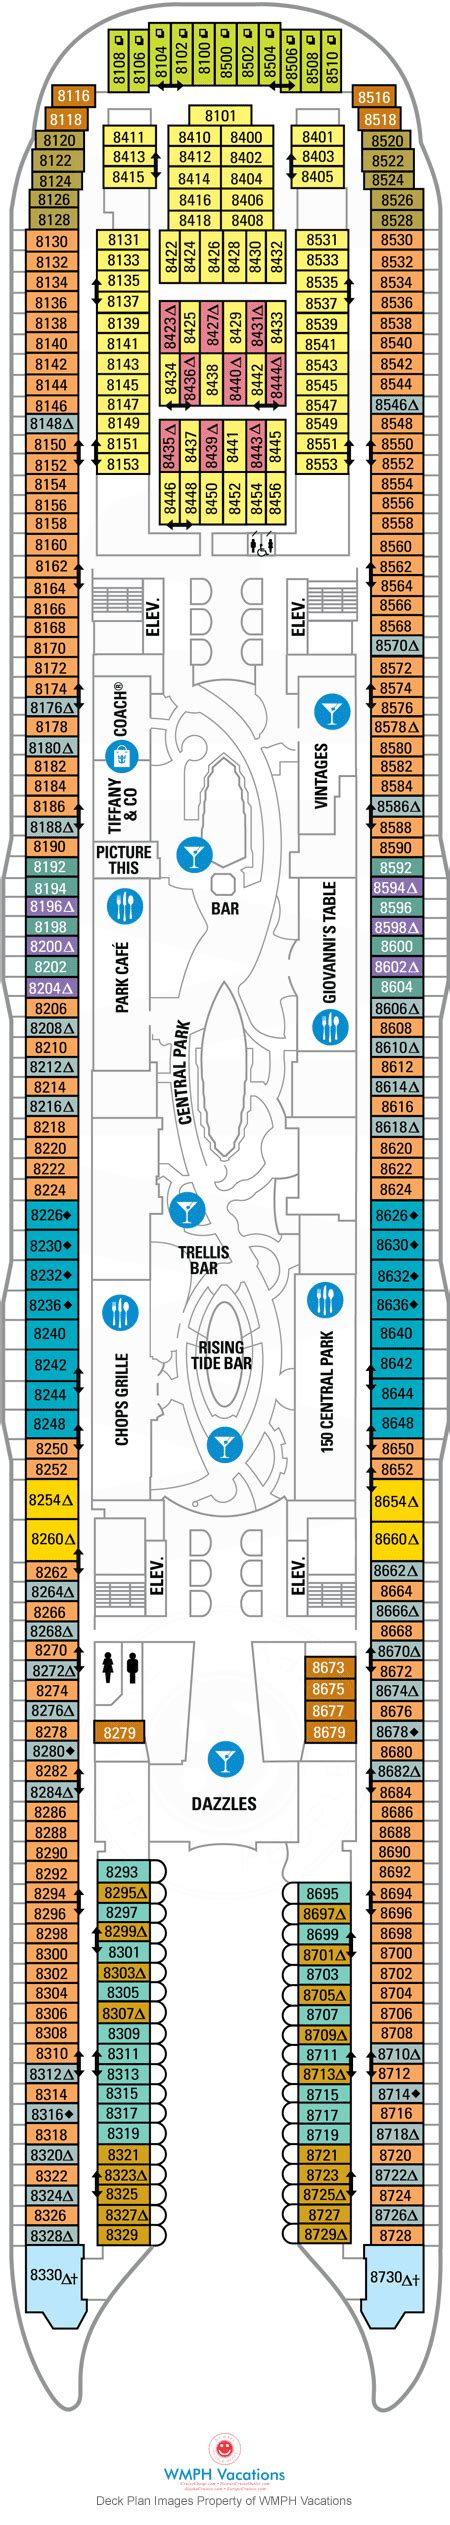 oasis of the seas floor plan oasis of the seas deck plans deck 8 what s on deck 8